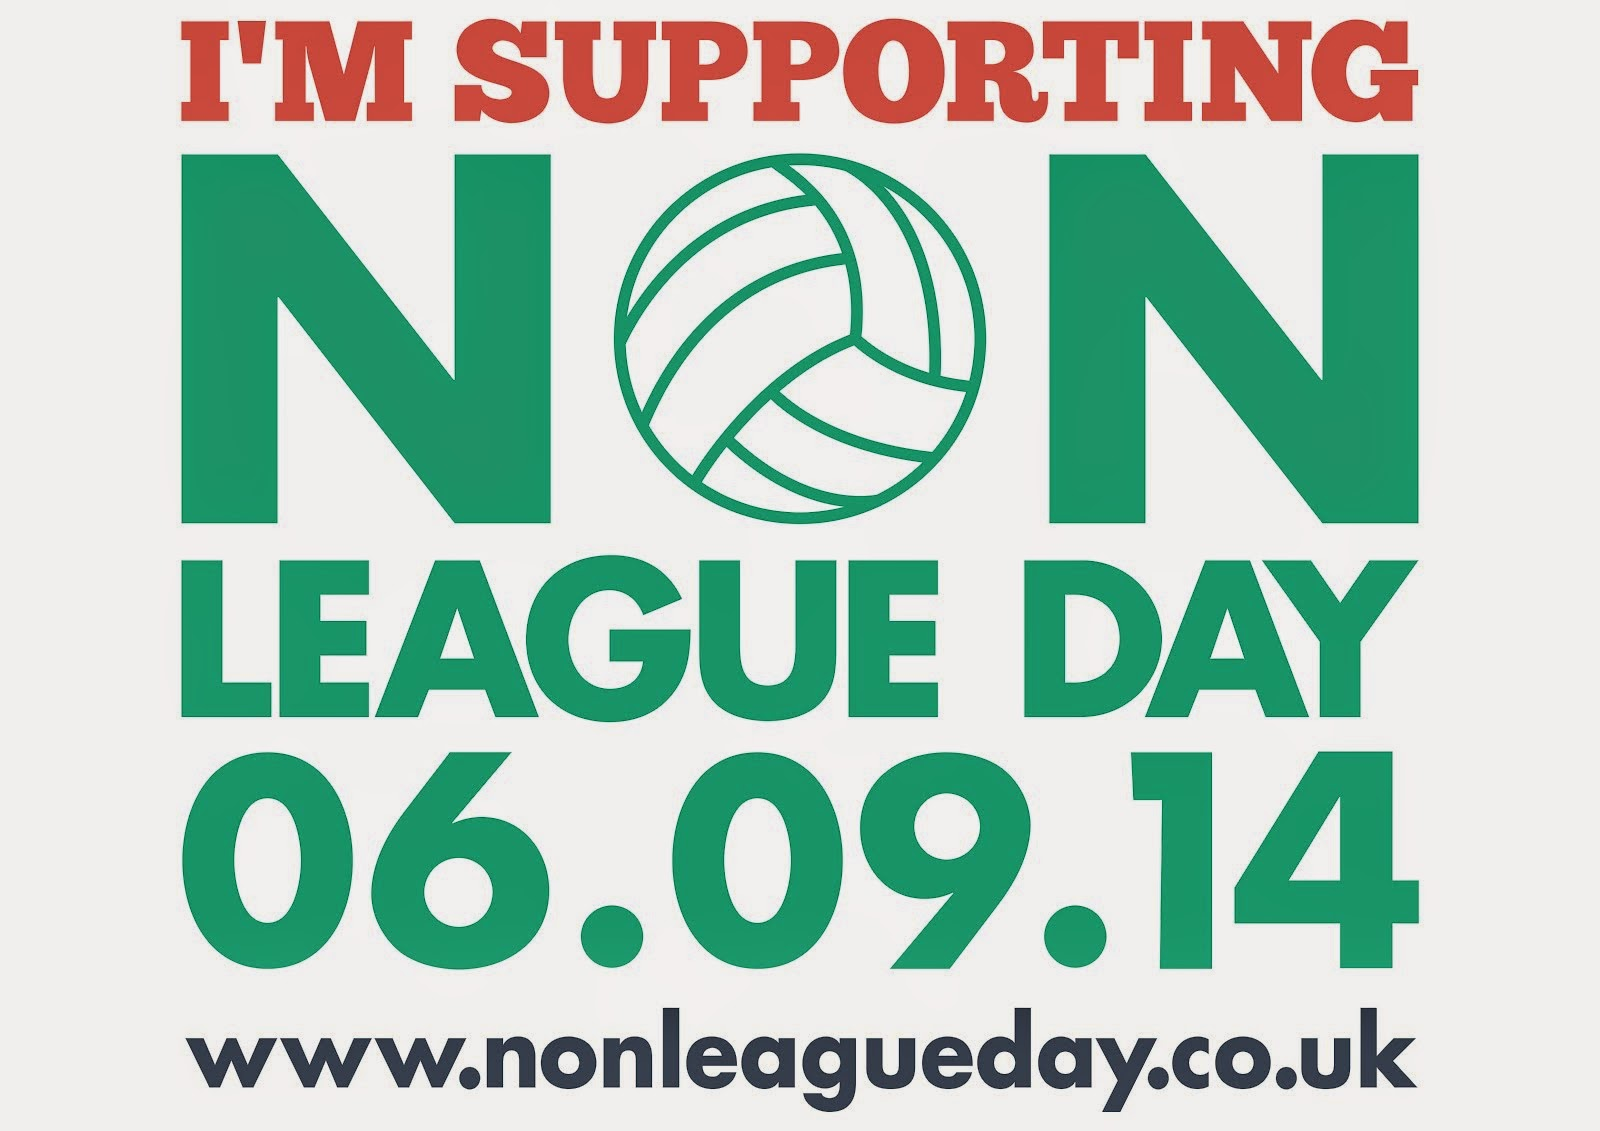 Non-League Day 2014